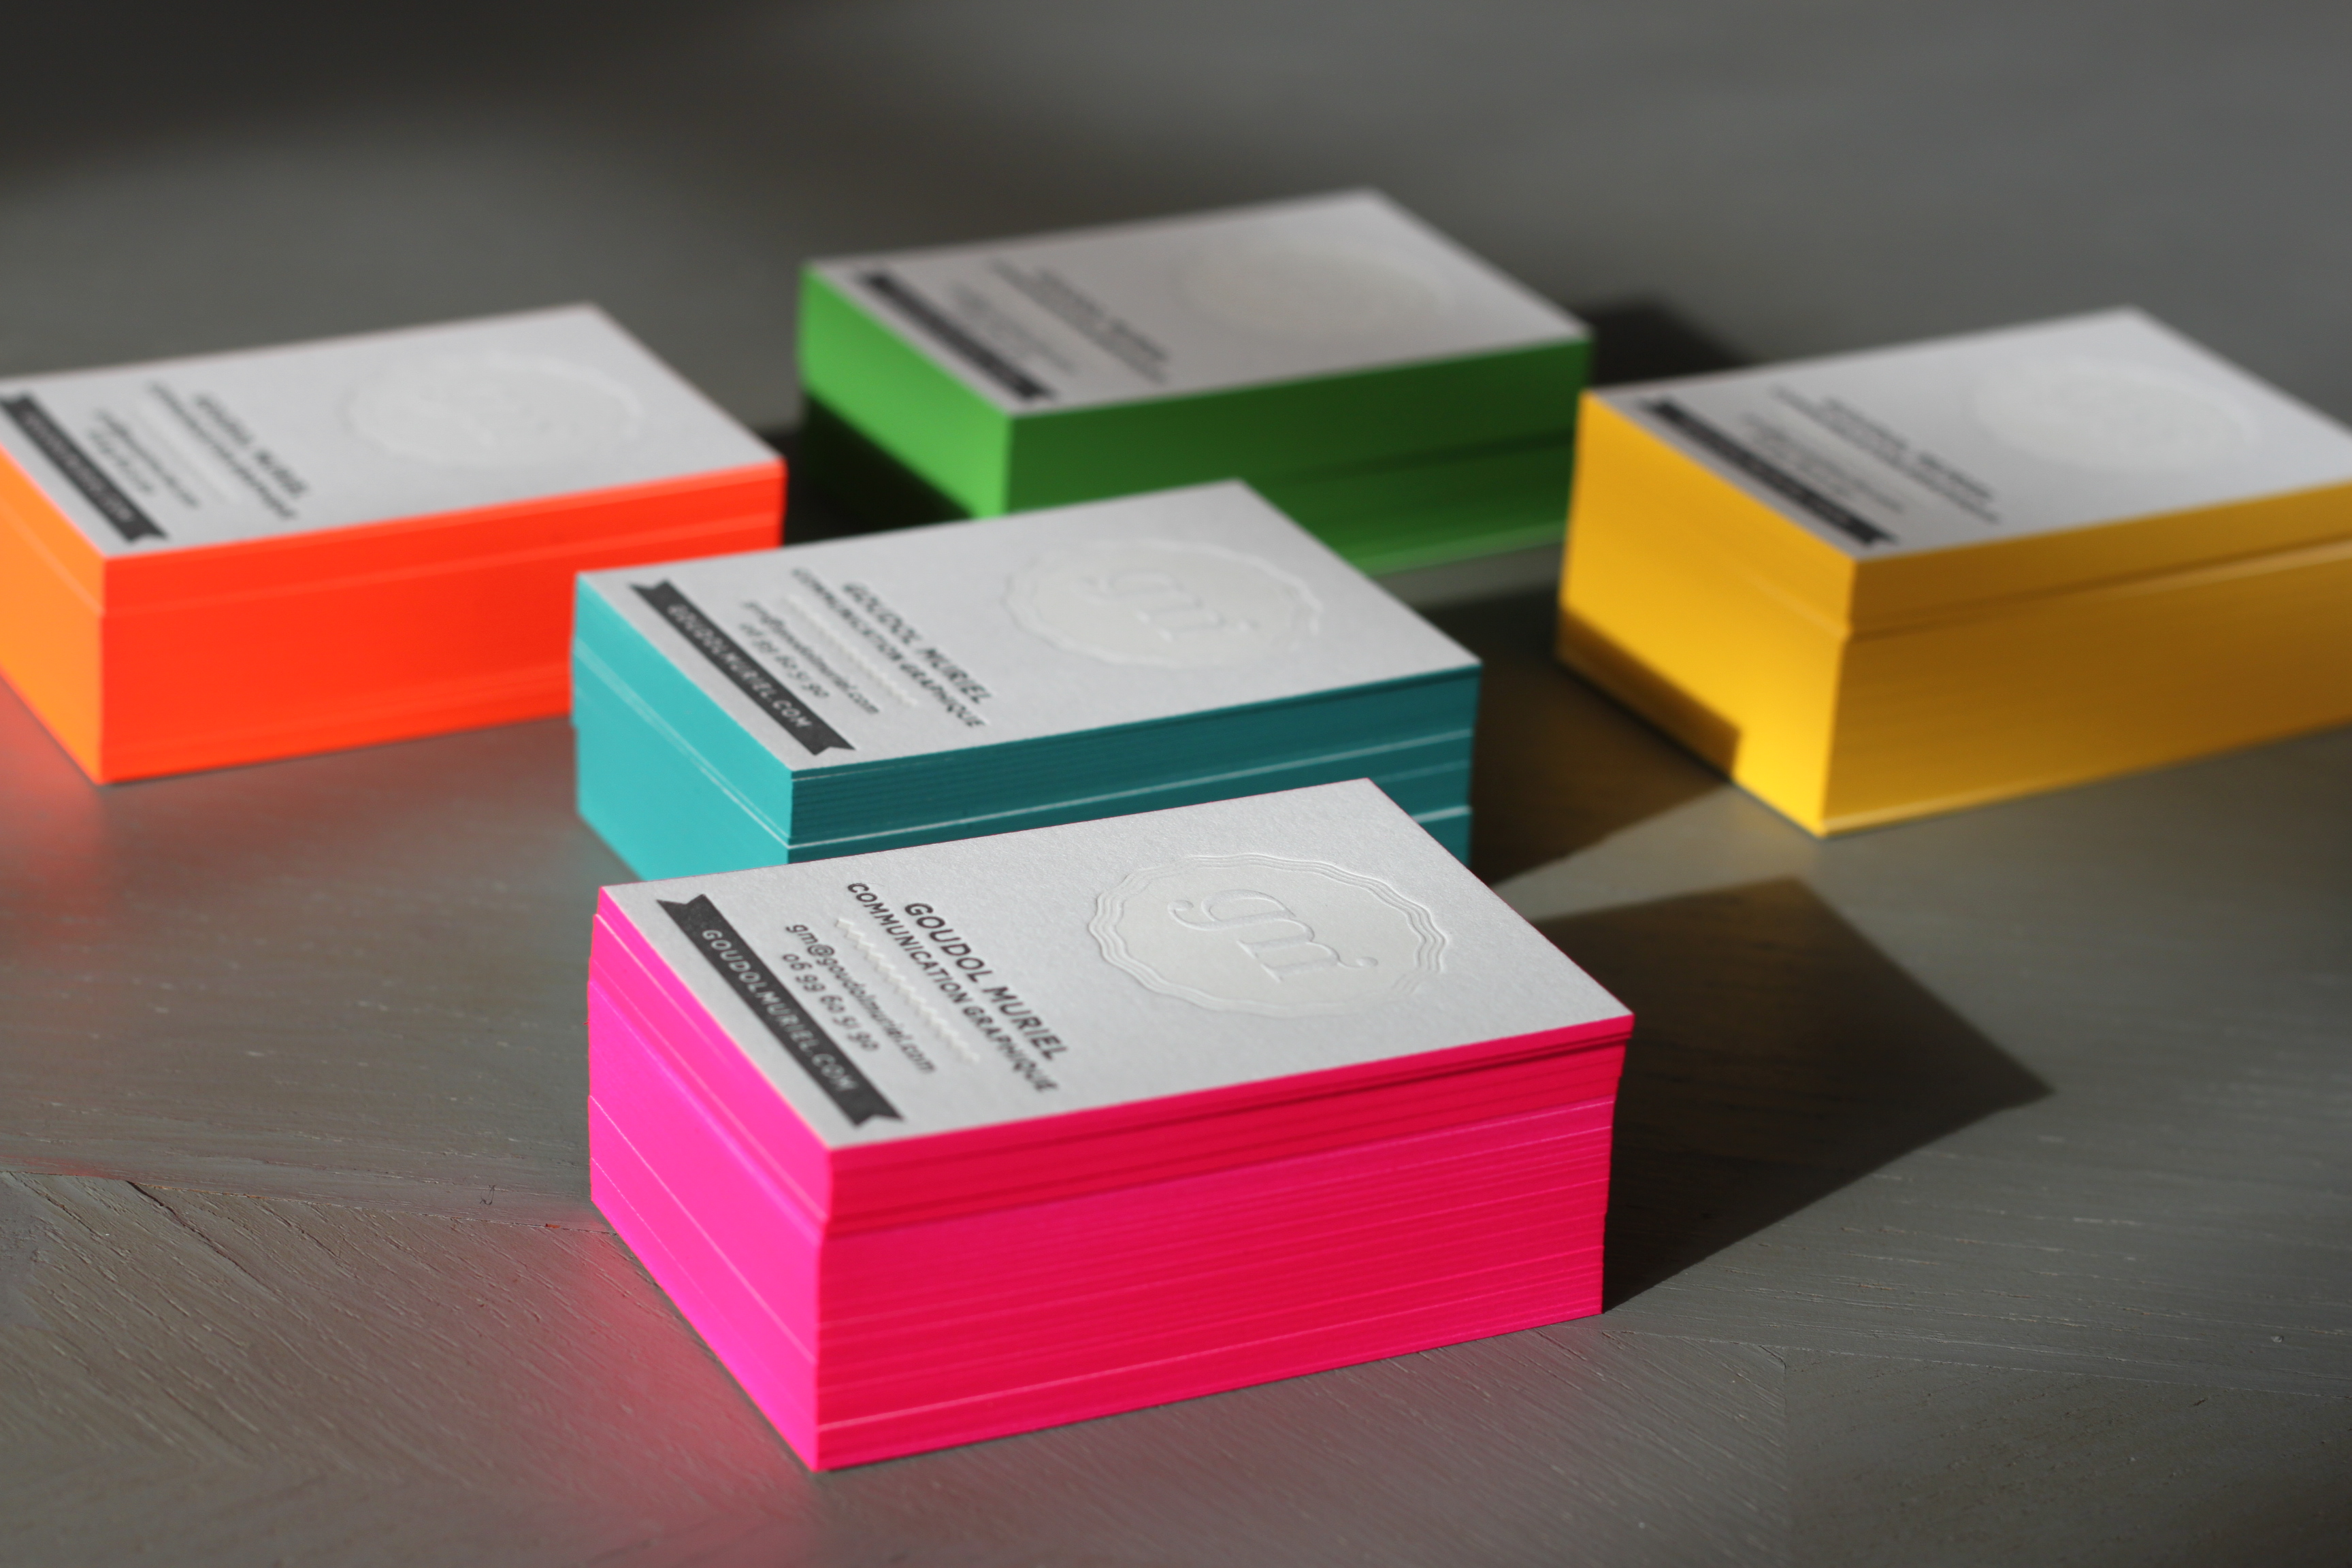 Goudol muriel business cards fonts in use goudol muriel business cards 1 colourmoves